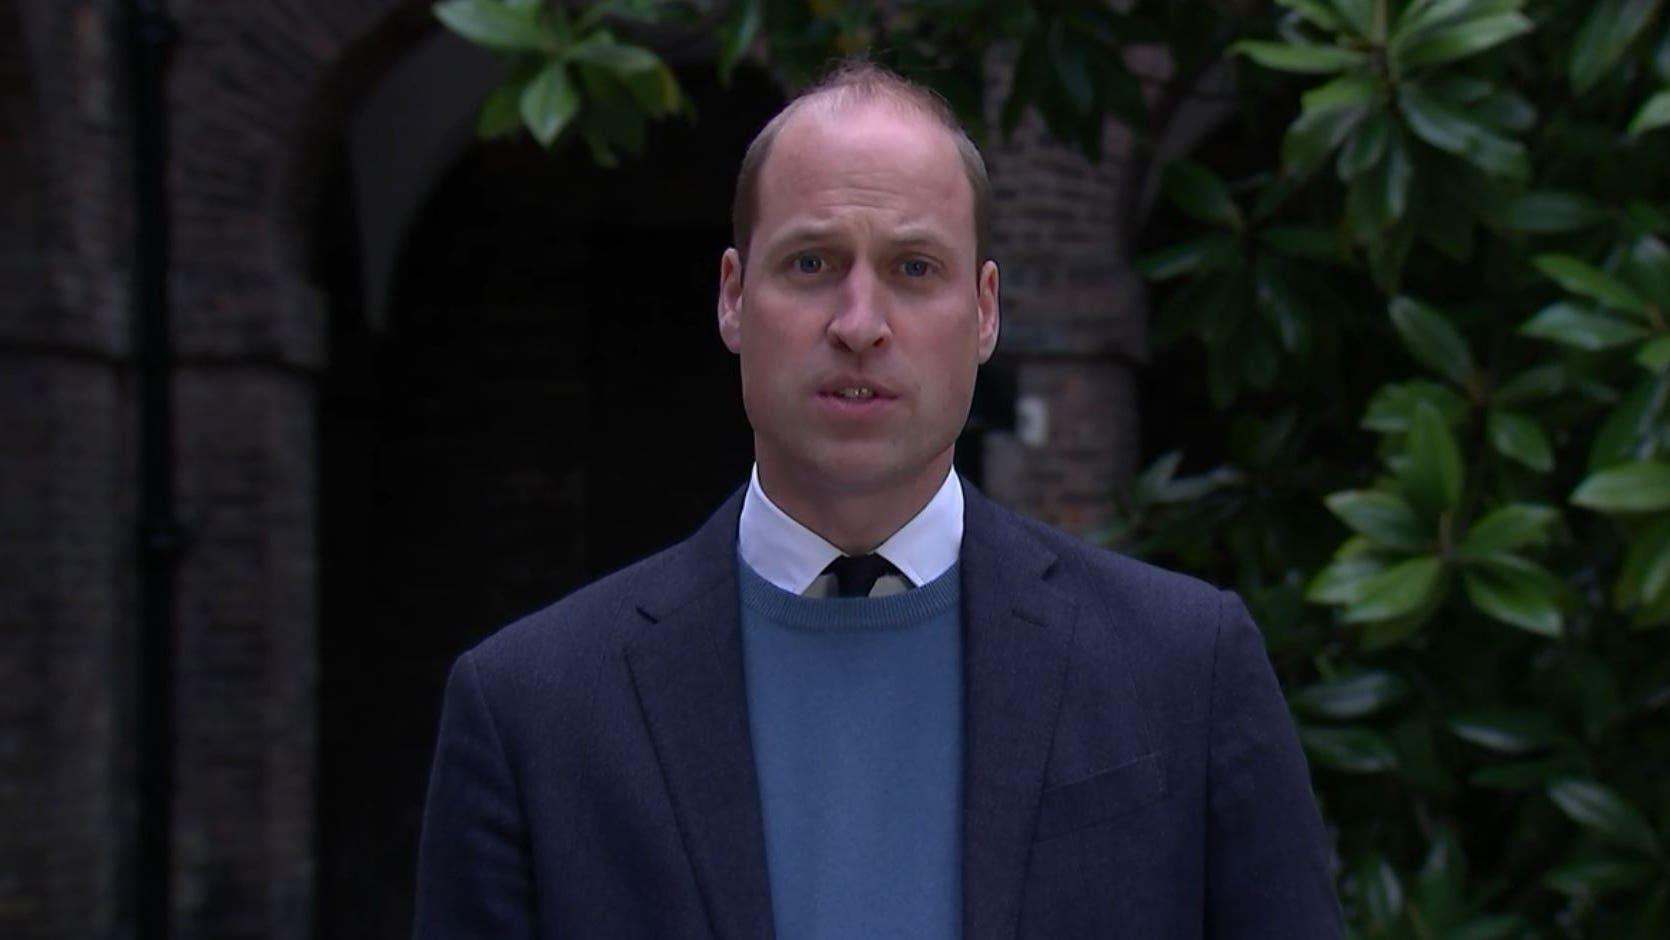 William: Panorama interview fuelled my mother's paranoia